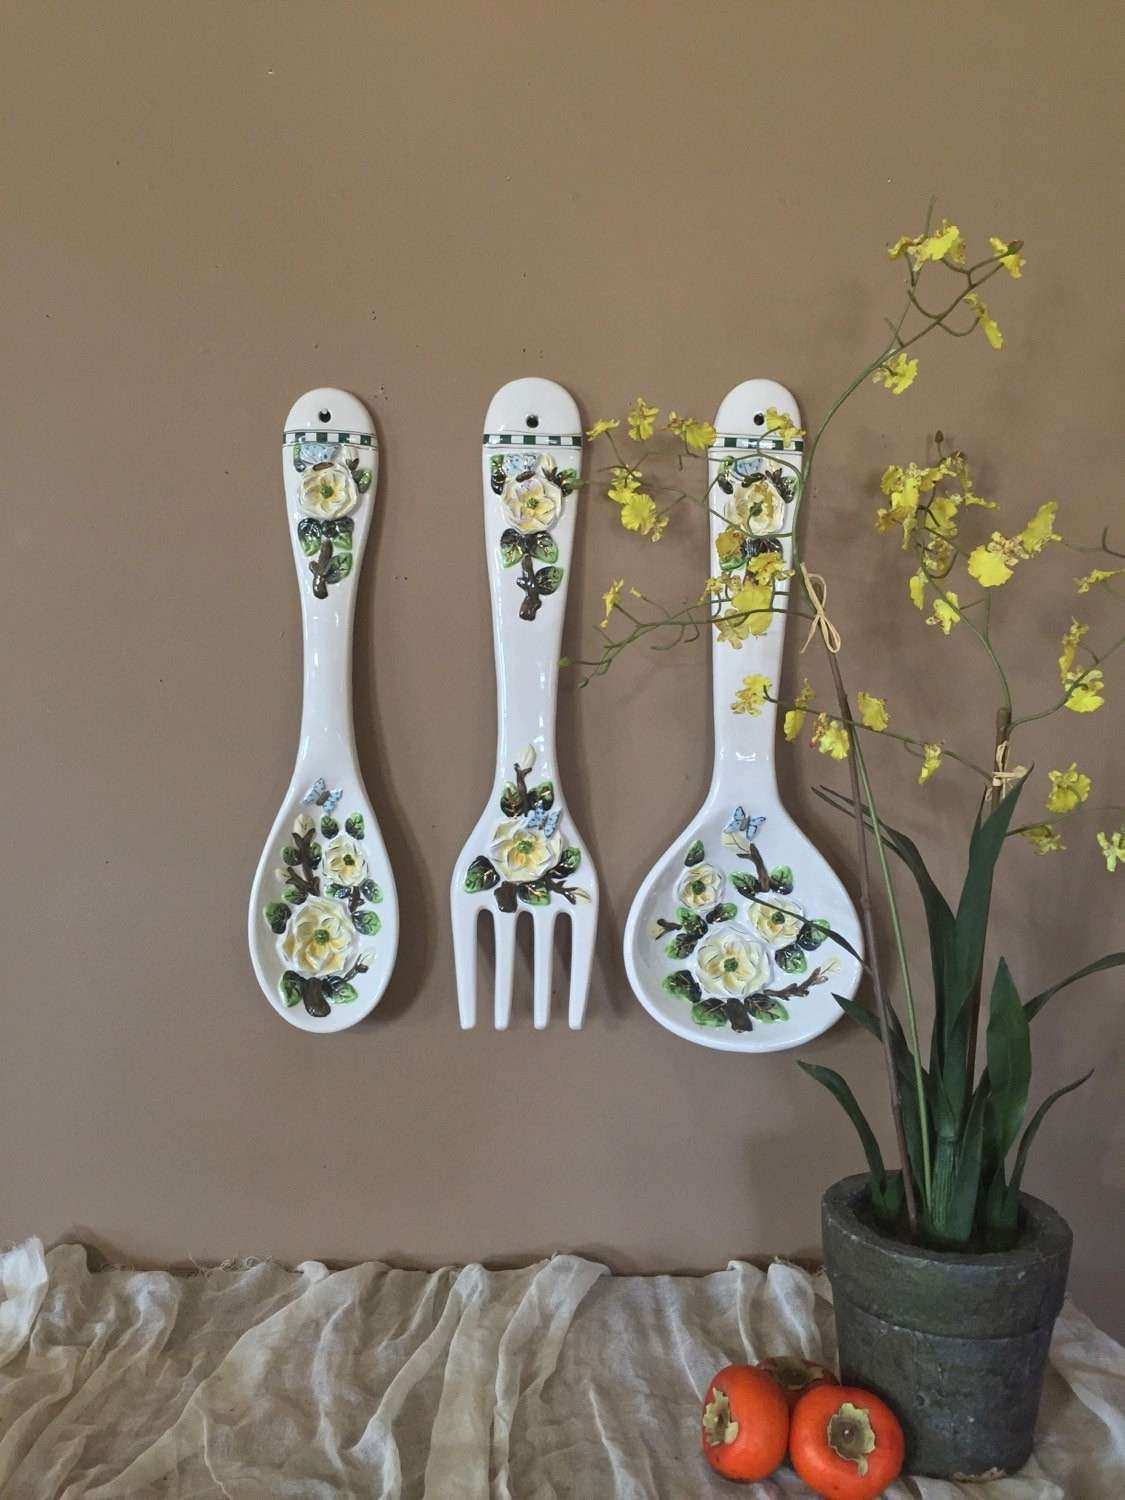 Vintage Spoon and Fork Spoon and Fork Wall Decor Spoon and